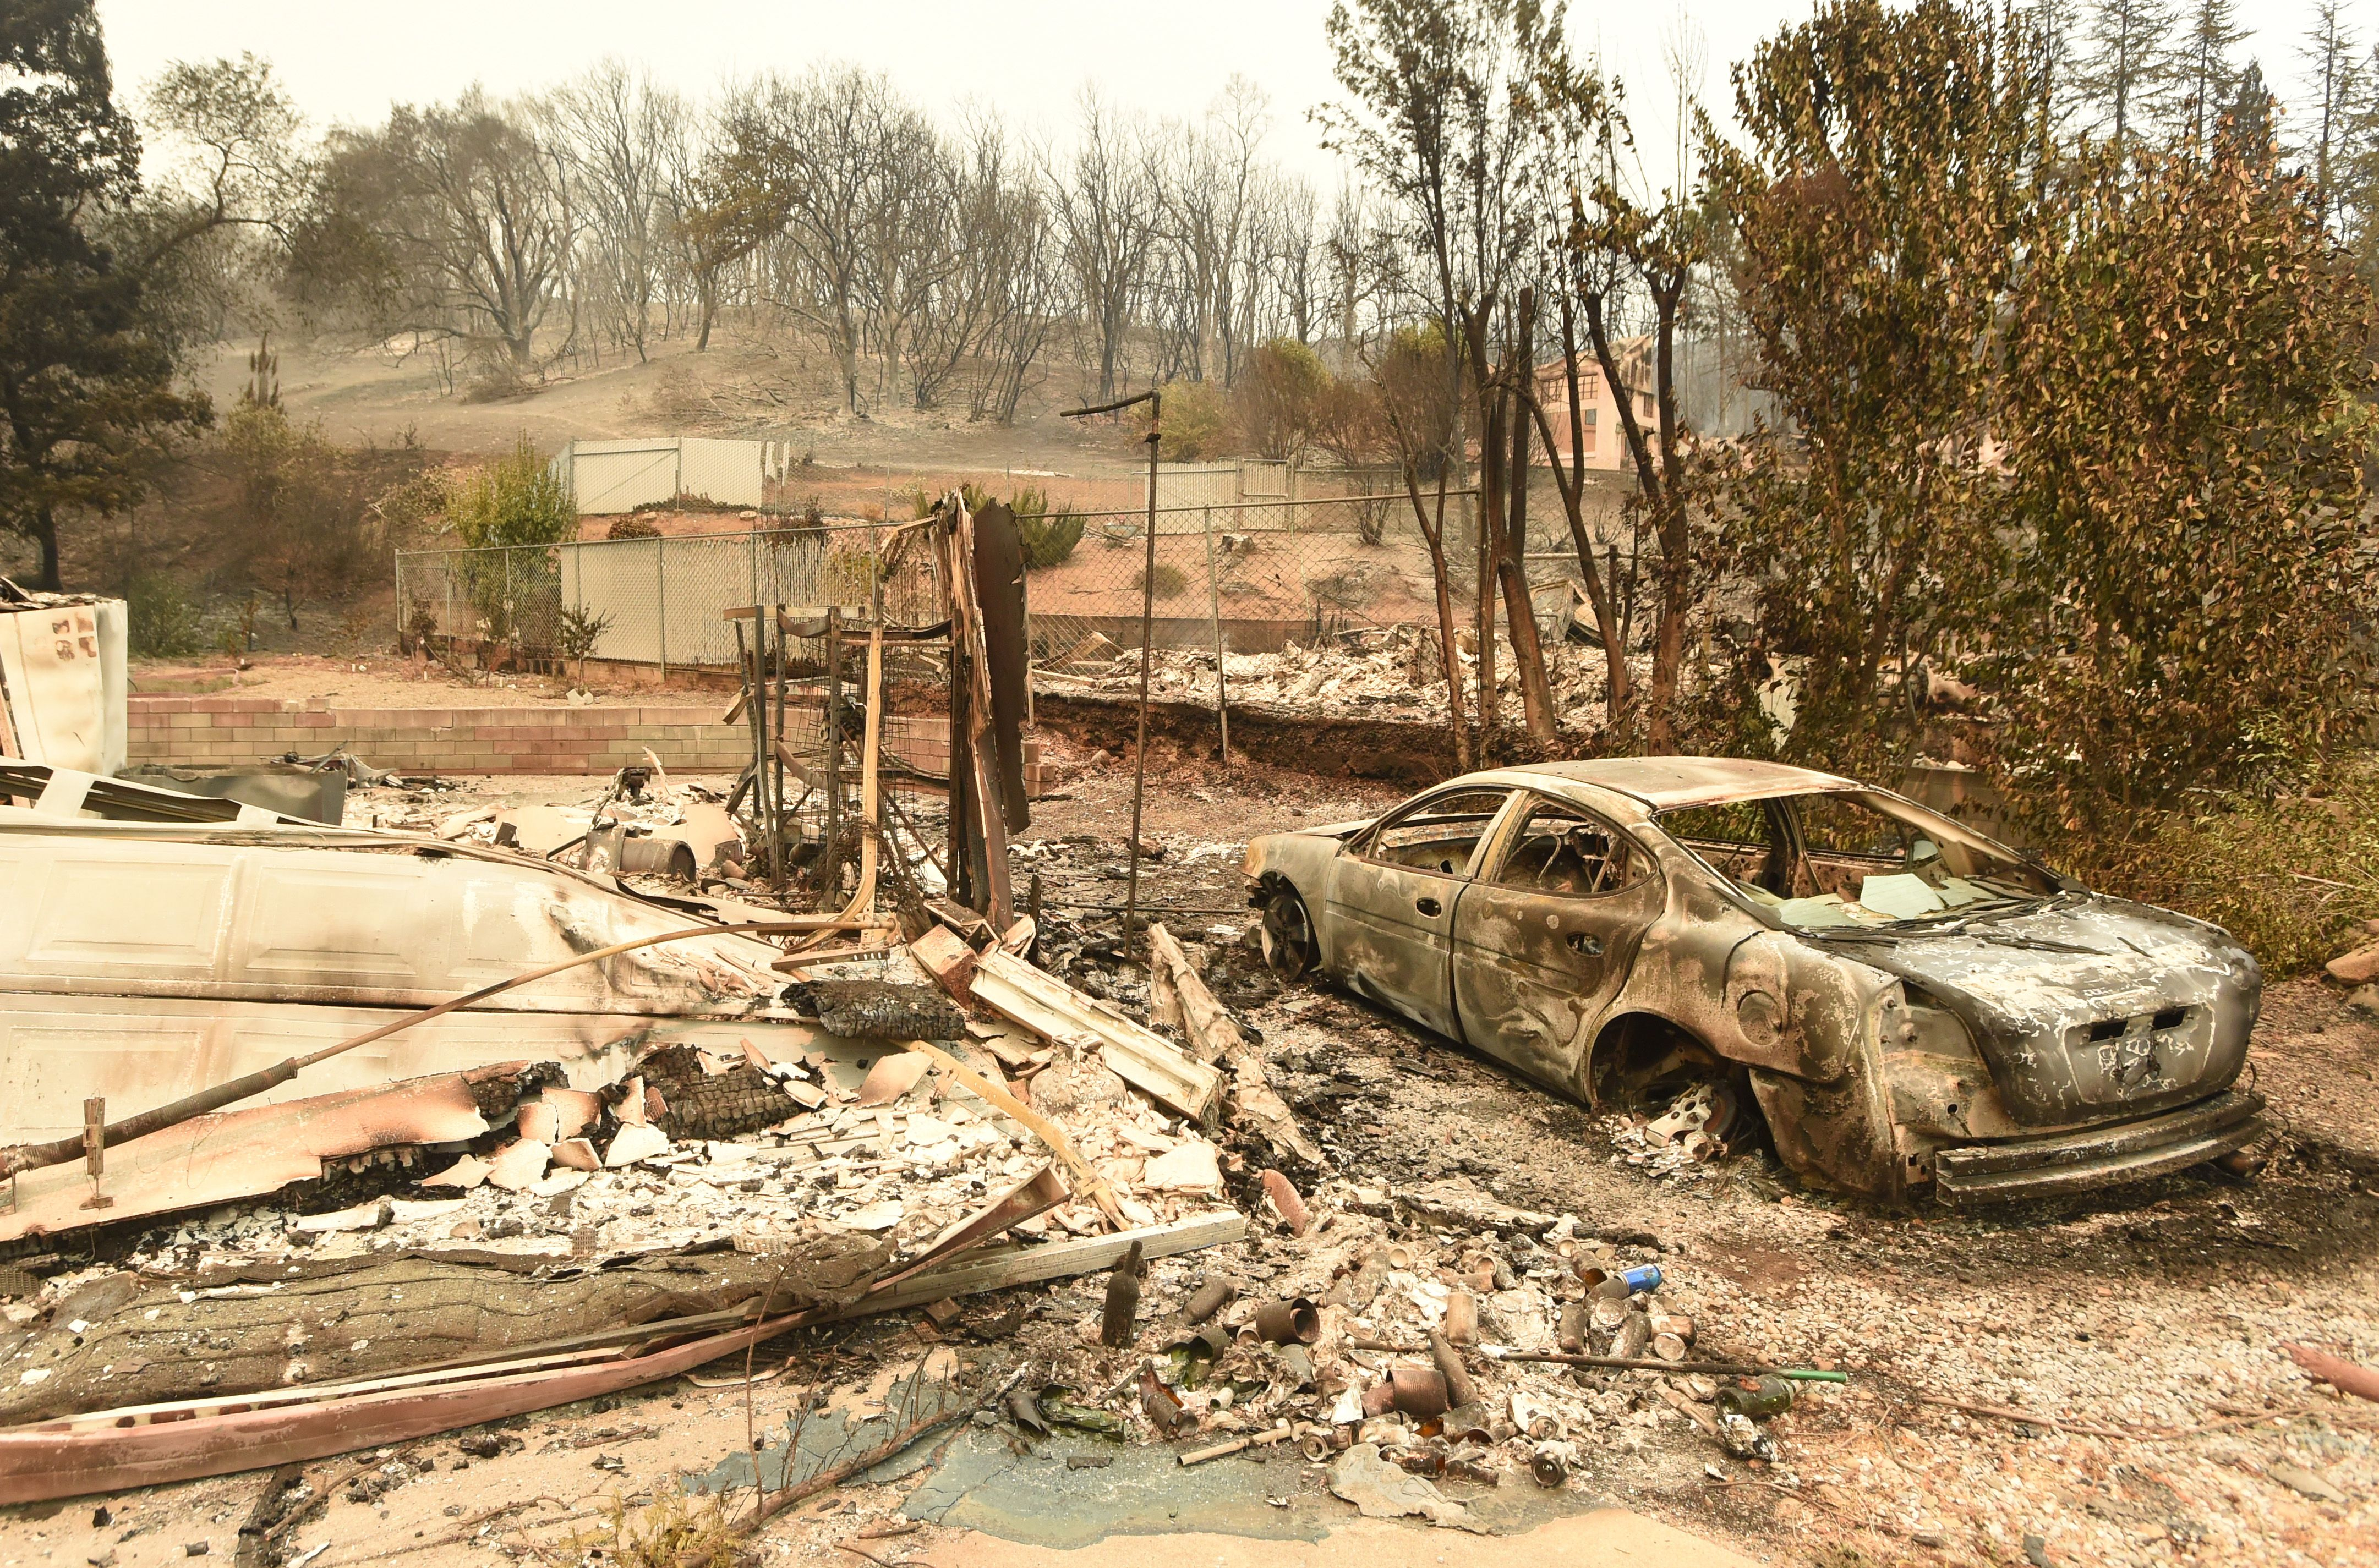 The burned out remains of a home in a residential neighborhood during the Carr Fire in Redding, California on July 27, 2018.